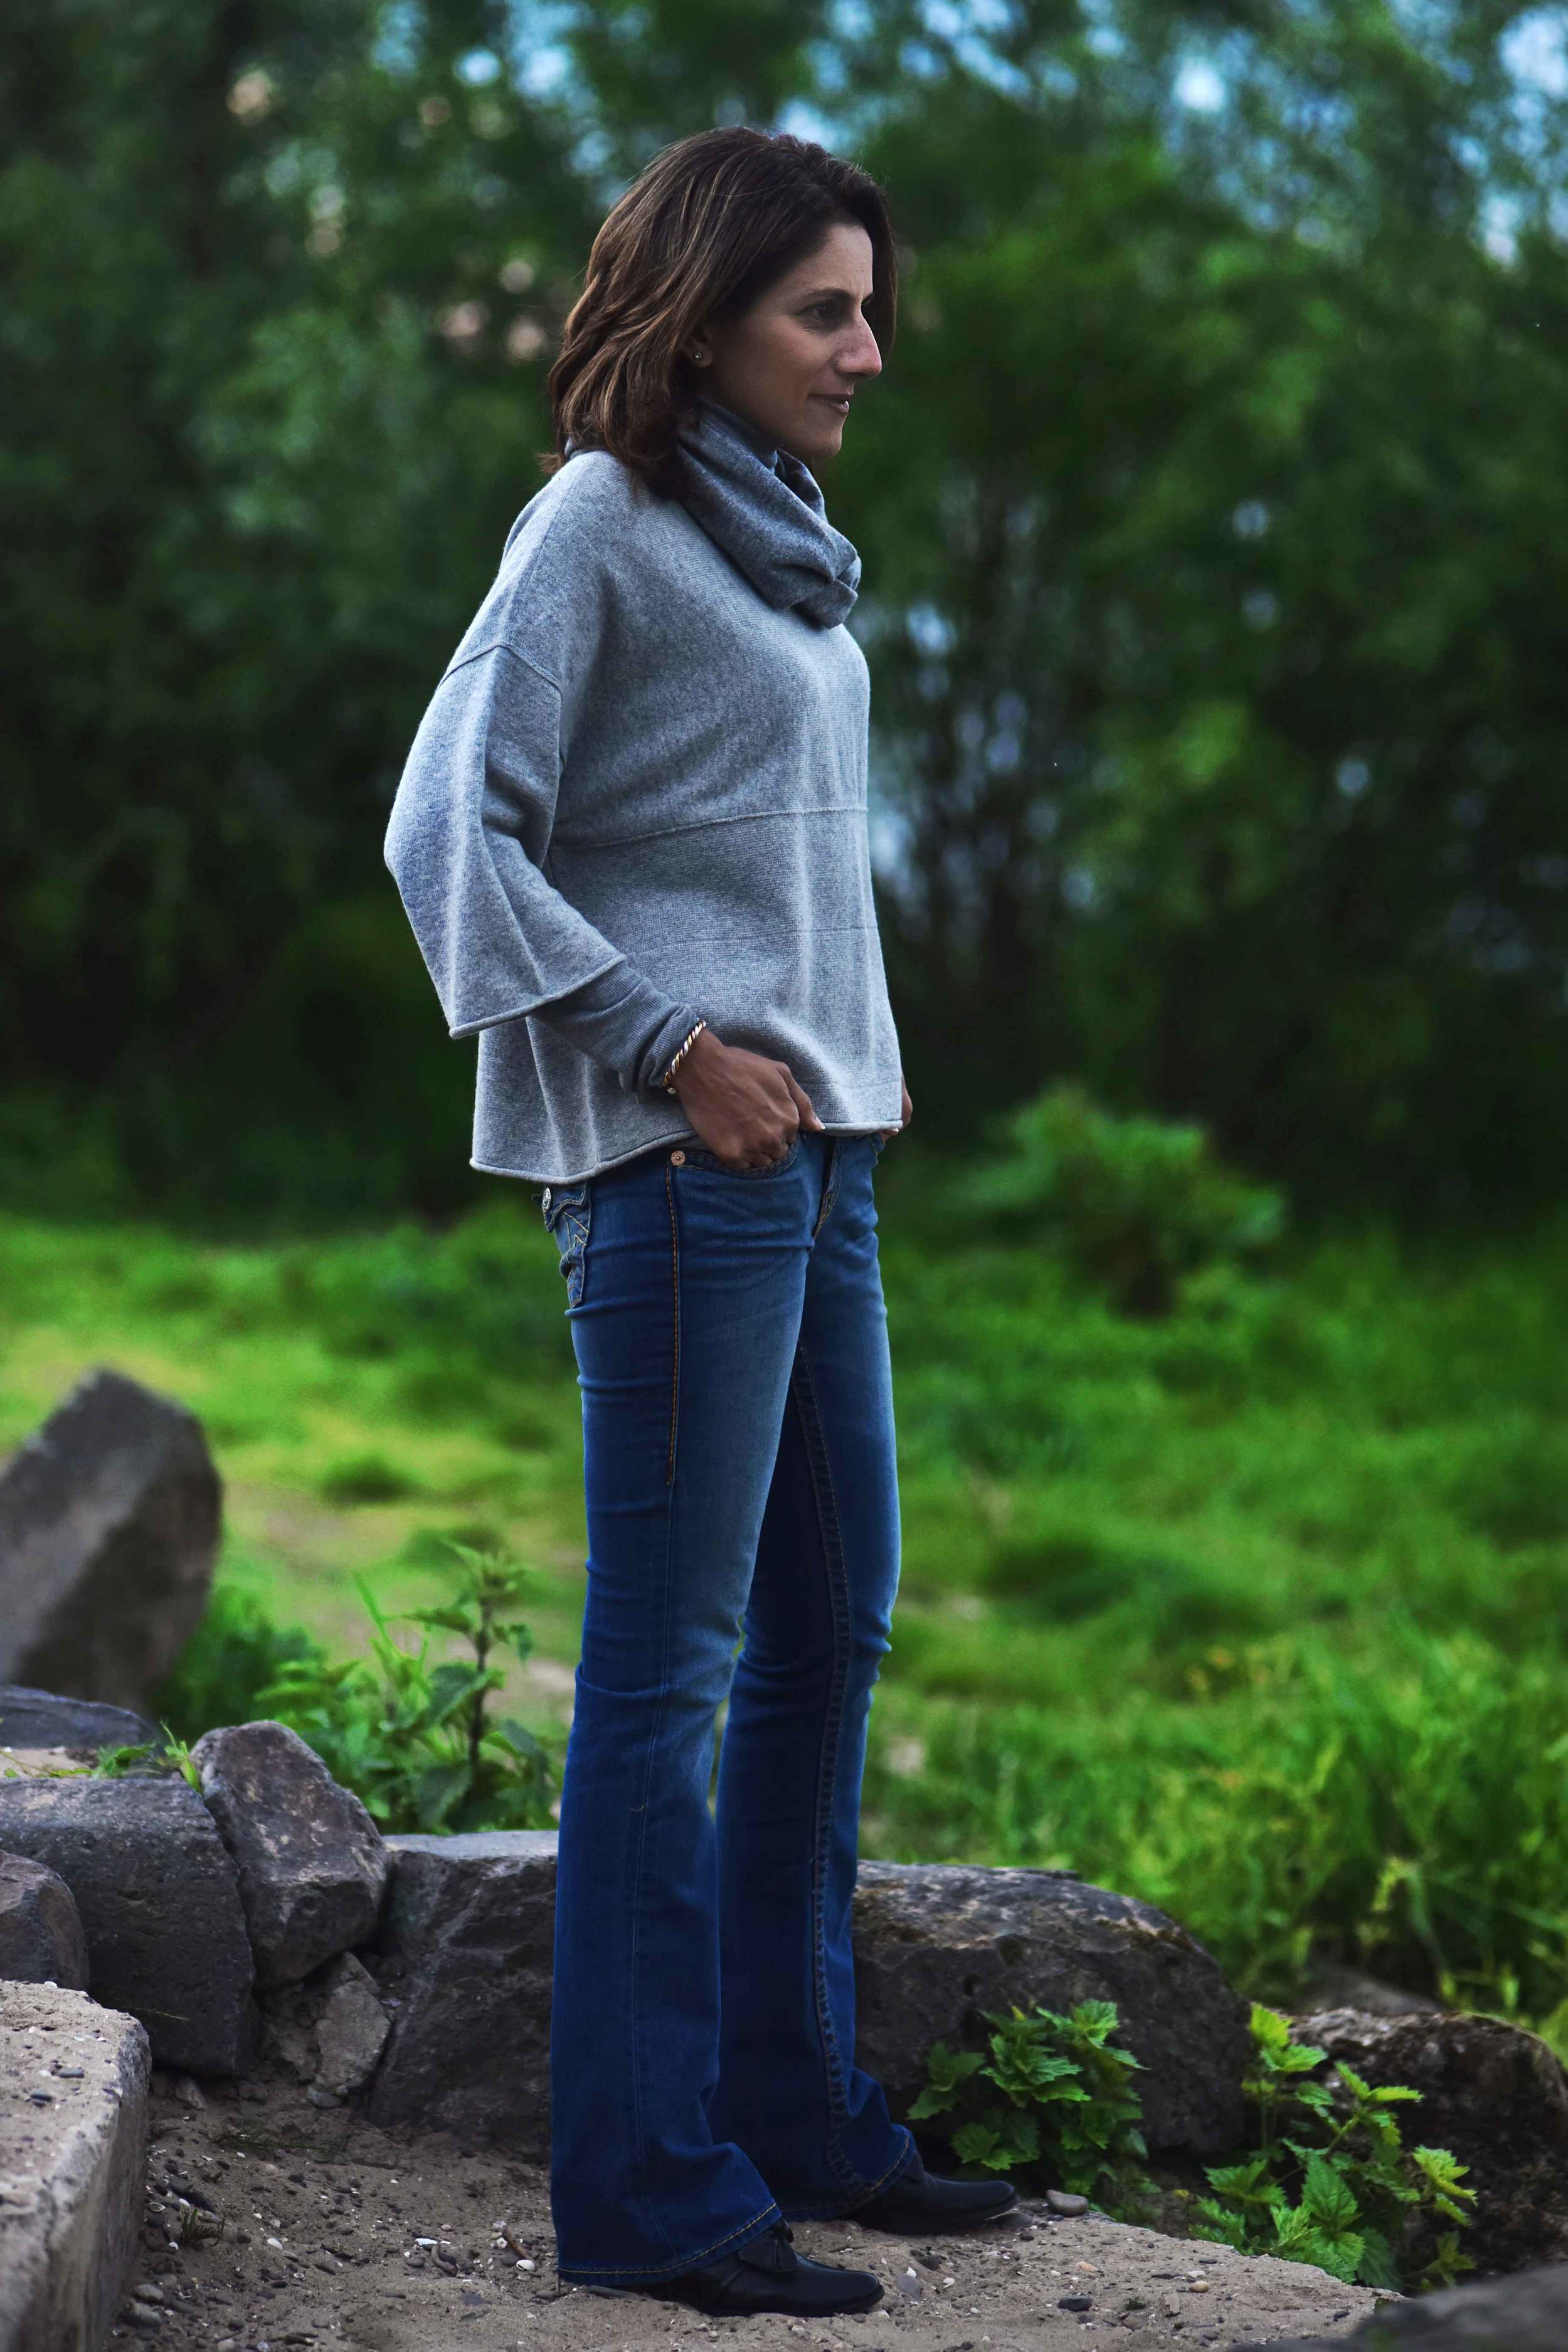 JJill cashmere kimono sweater, JJill cashmere infinity scarf, True Religion blue jeans, Ralph Lauren cotton polo sweater for layering. Image©sourcingstyle.com, photo: Nicola Nolting